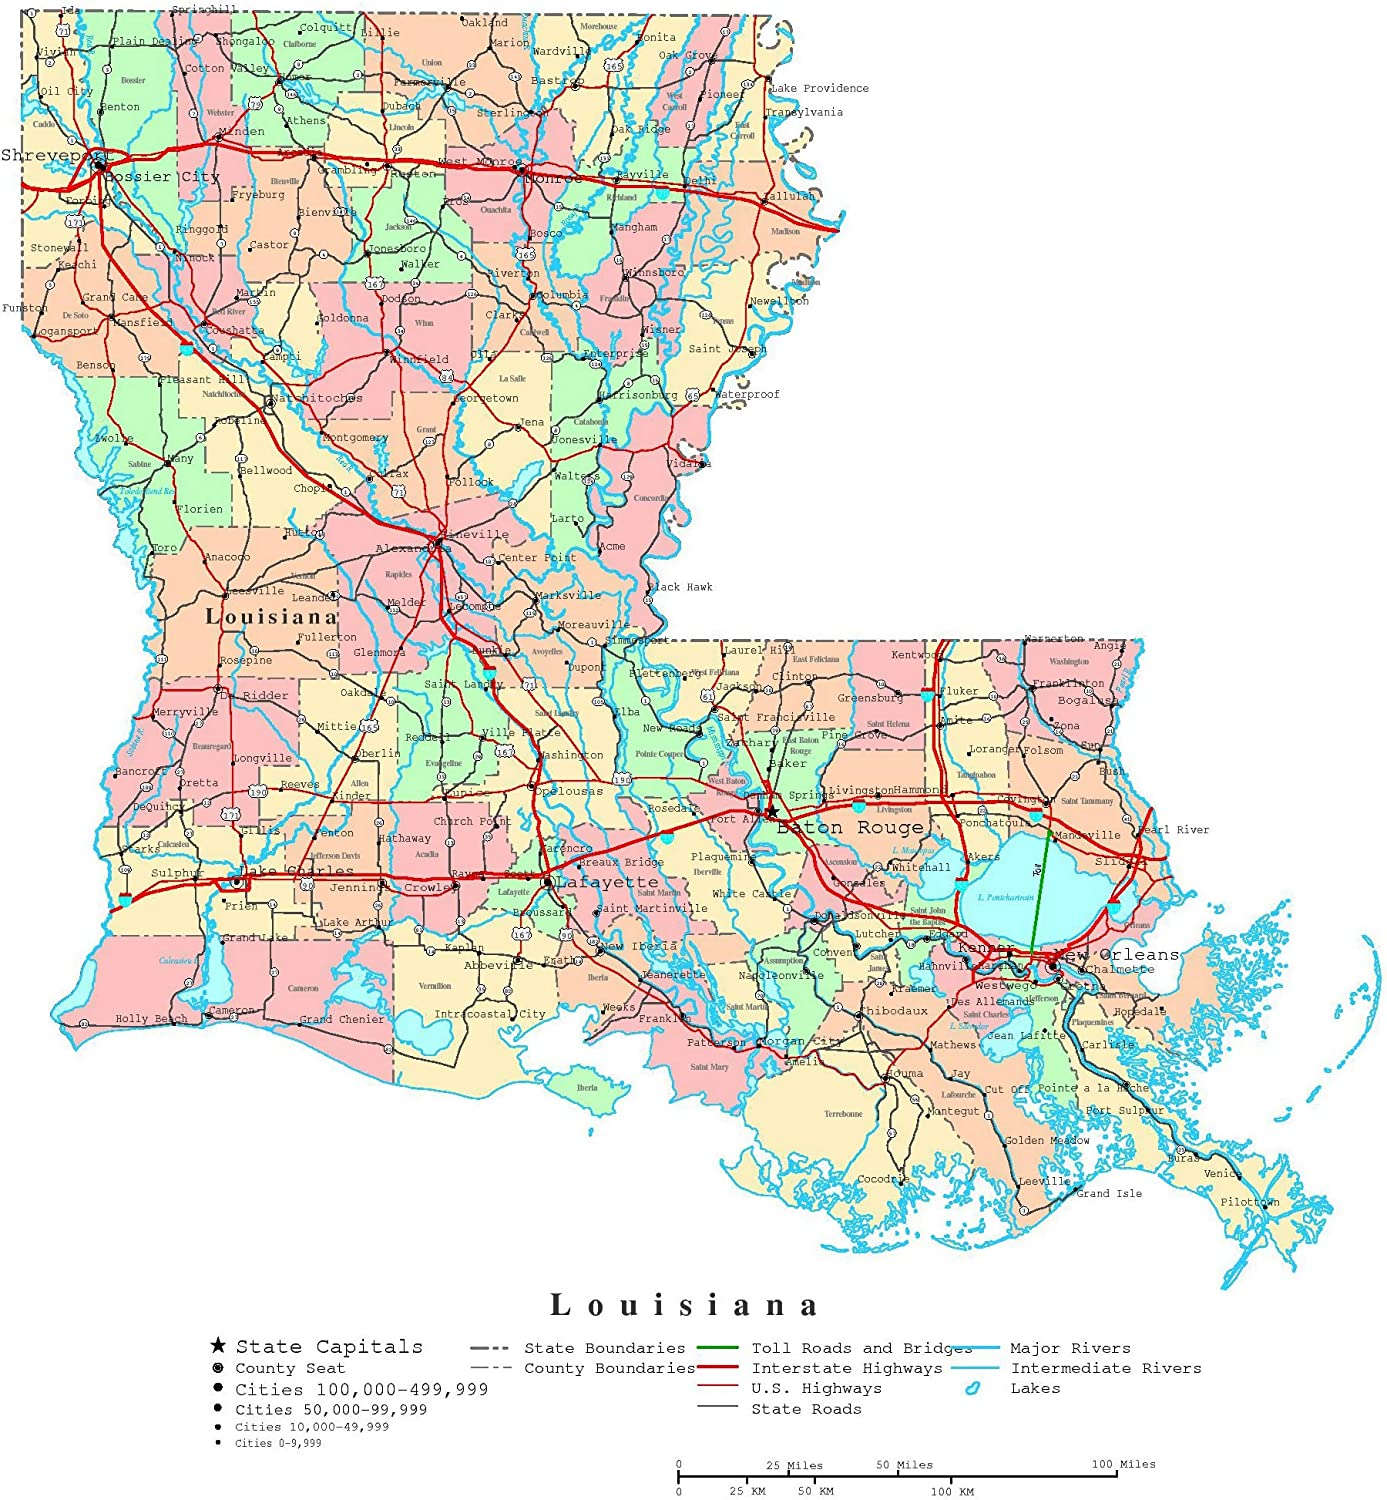 map of the state of louisiana Amazon Com Home Comforts Large Detailed Administrative Map Of map of the state of louisiana